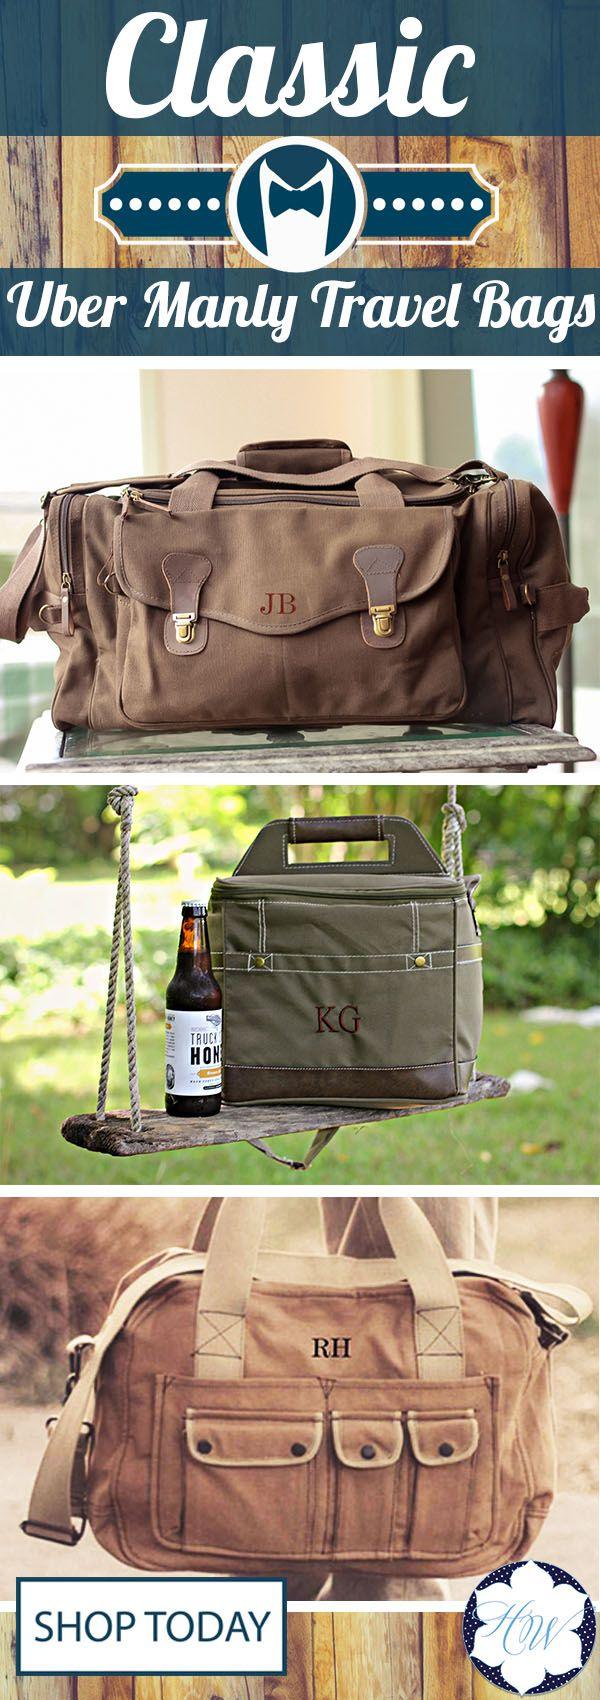 Find the perfect groomsmen gift among our wide selection of military style bags and travel gear. Shop now and take 10% off using coupon code LIFEMATTERS at checkout!